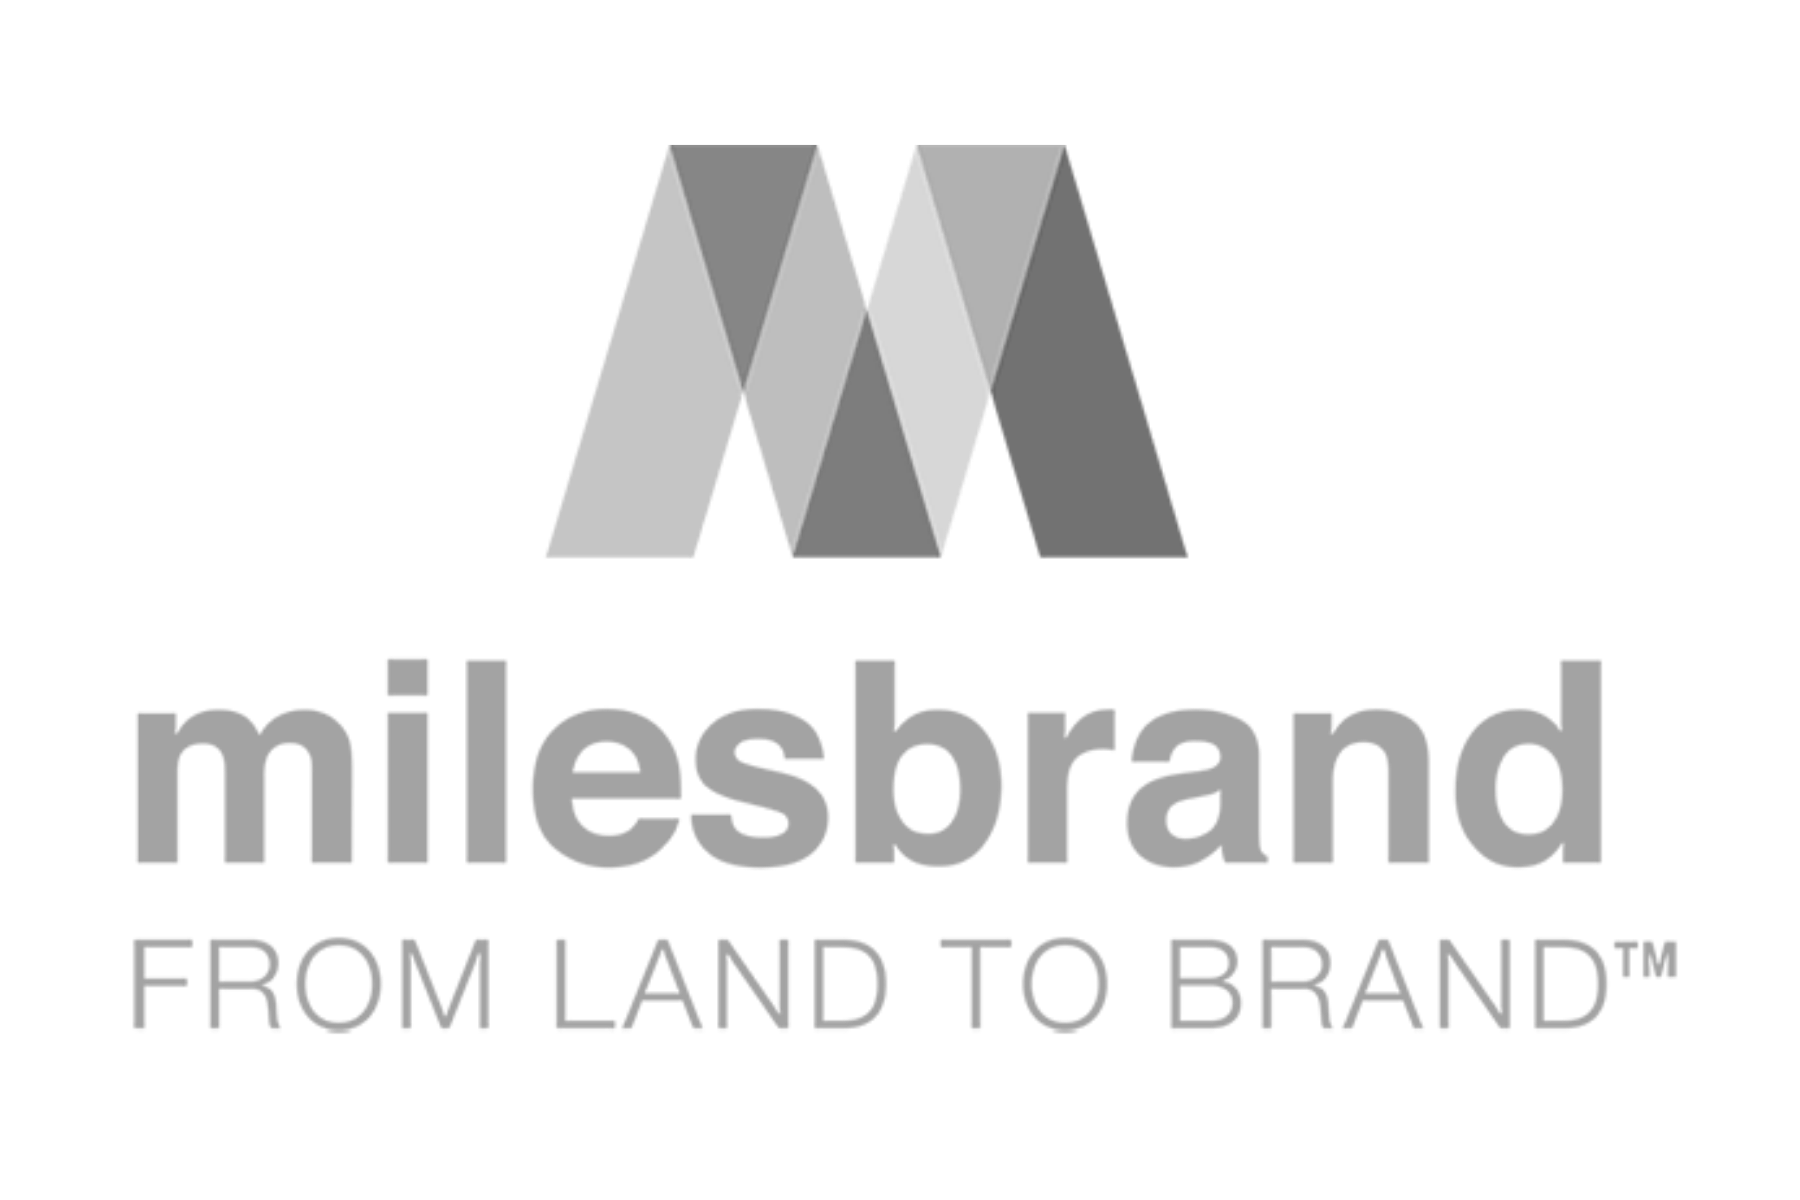 House of Revenue Client - Milesbrand